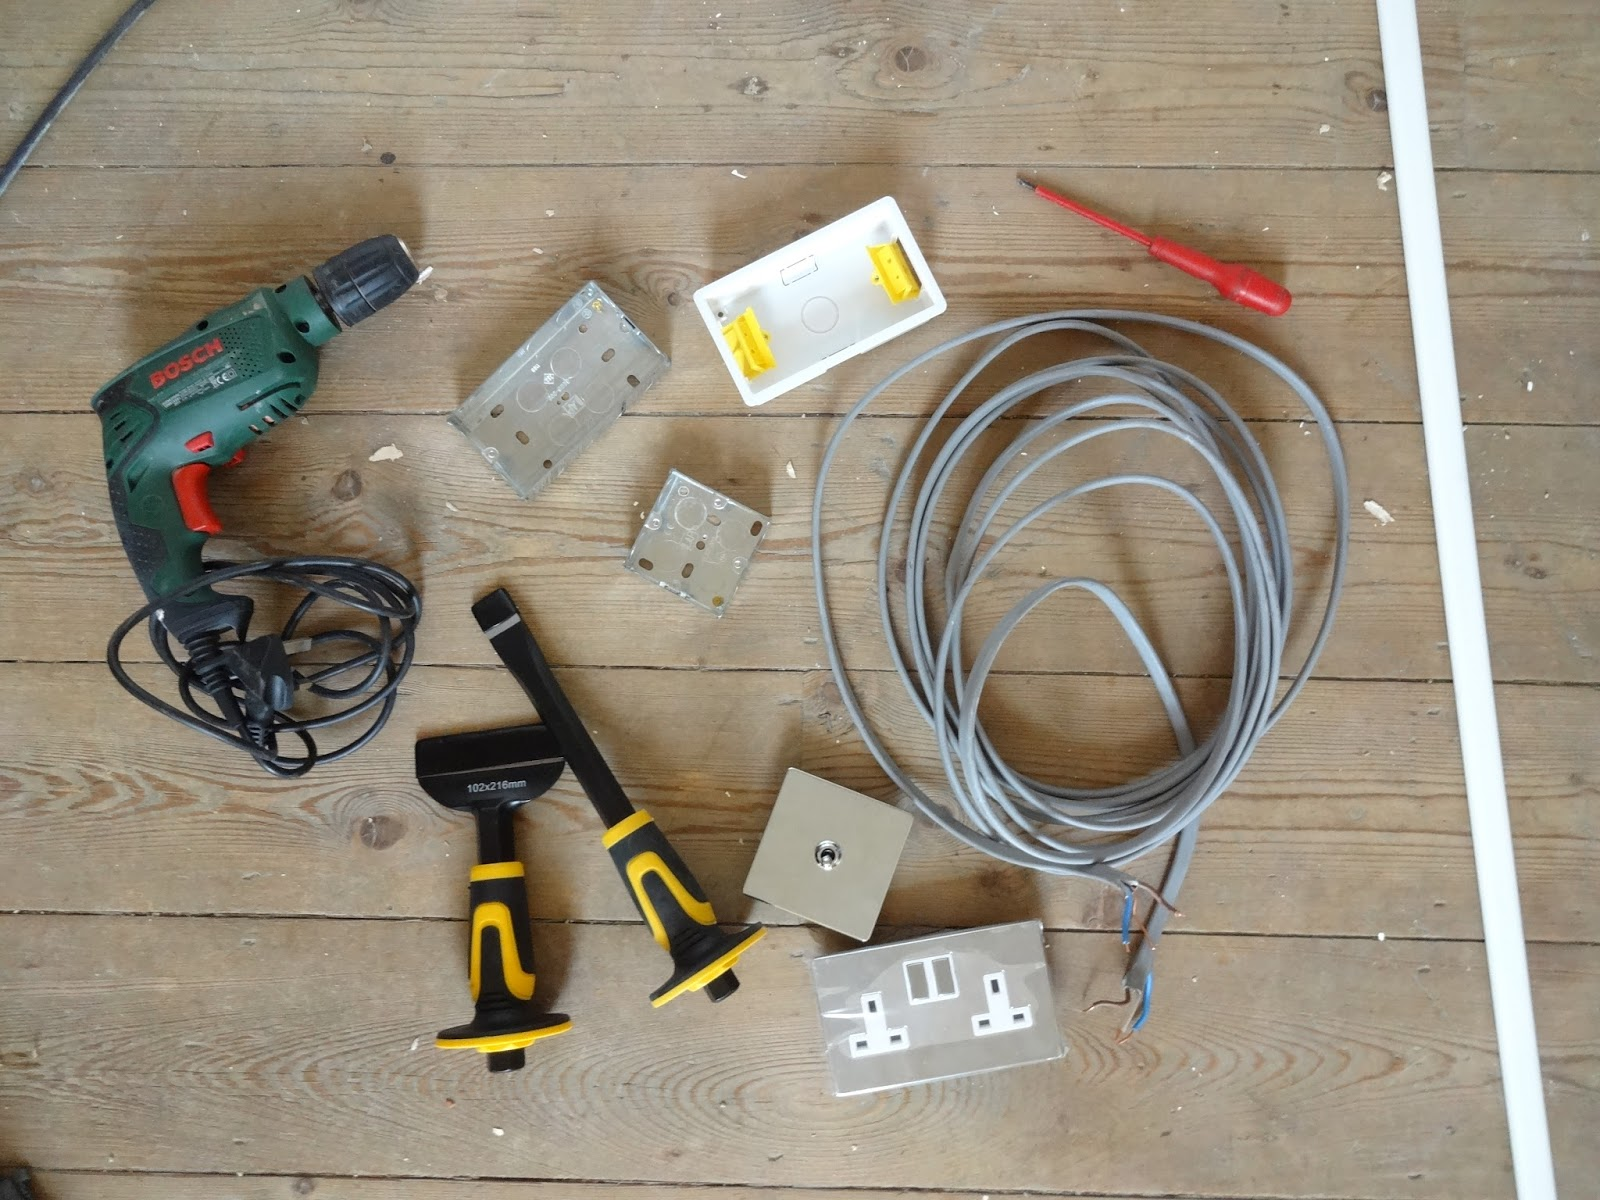 Tools for electrical jobs